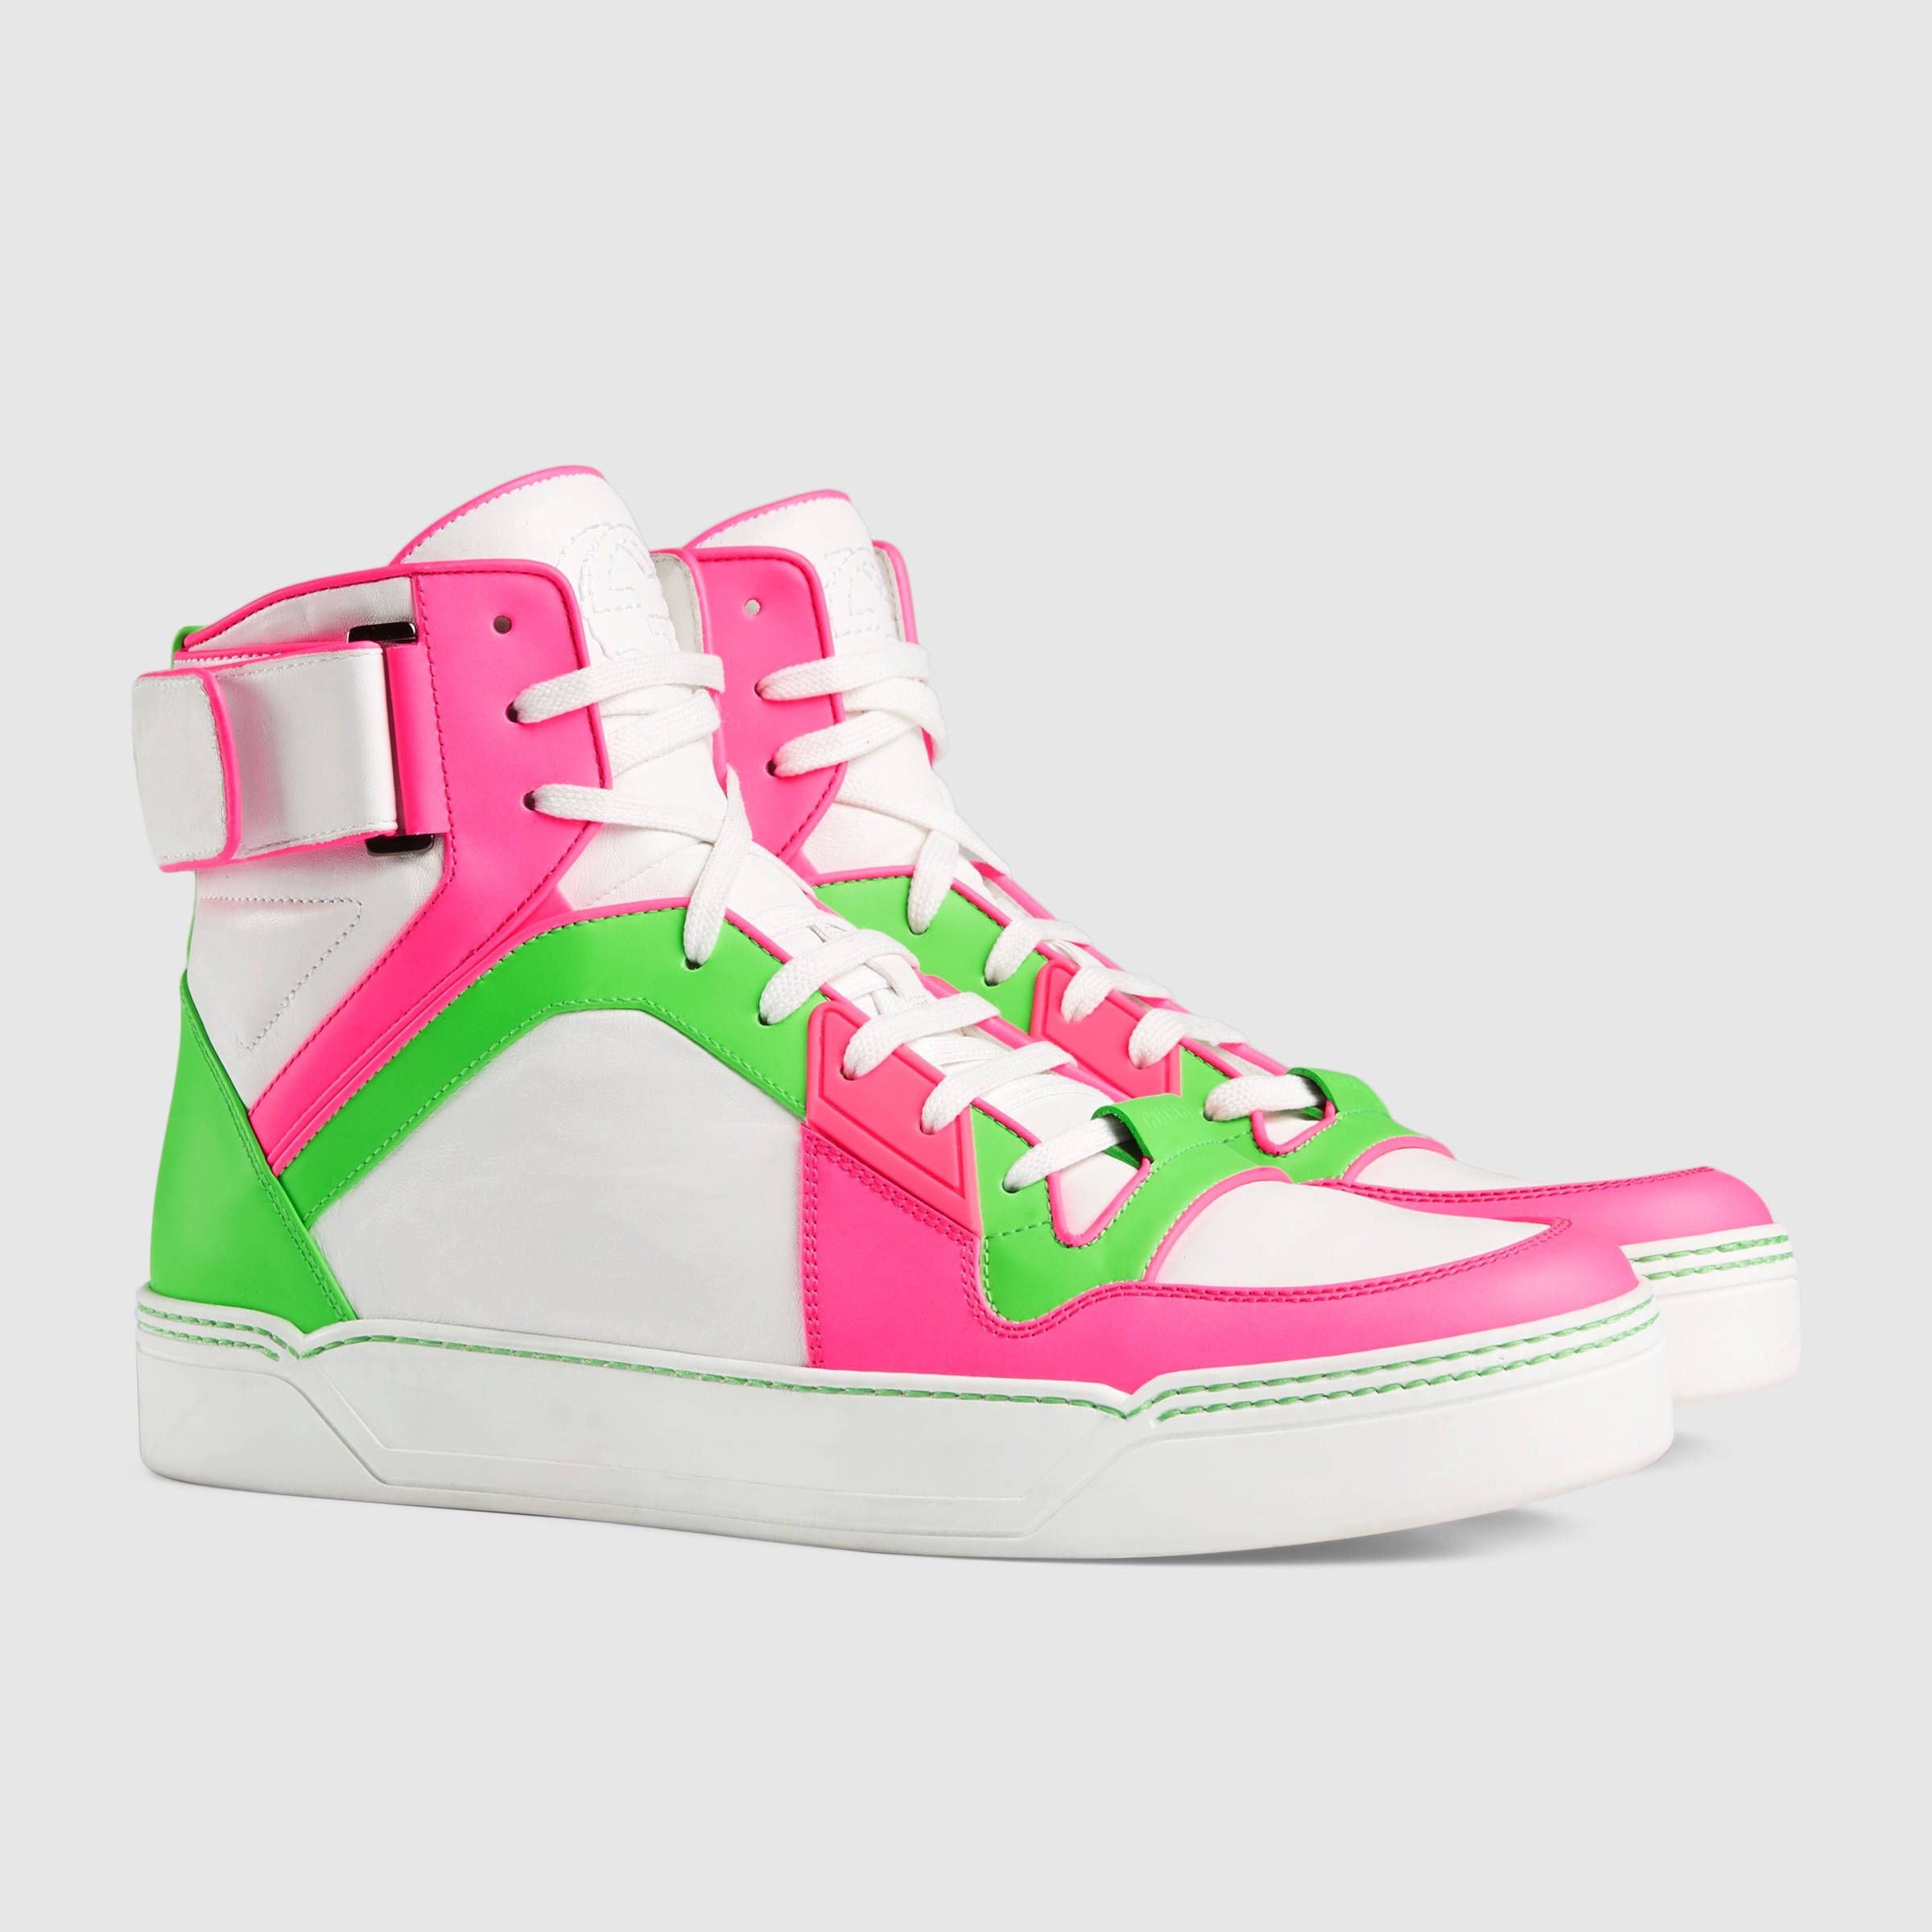 Gucci Neon leather high-top sneakers. Was $865, now $429. Was 670 EUR, now 335 EUR.